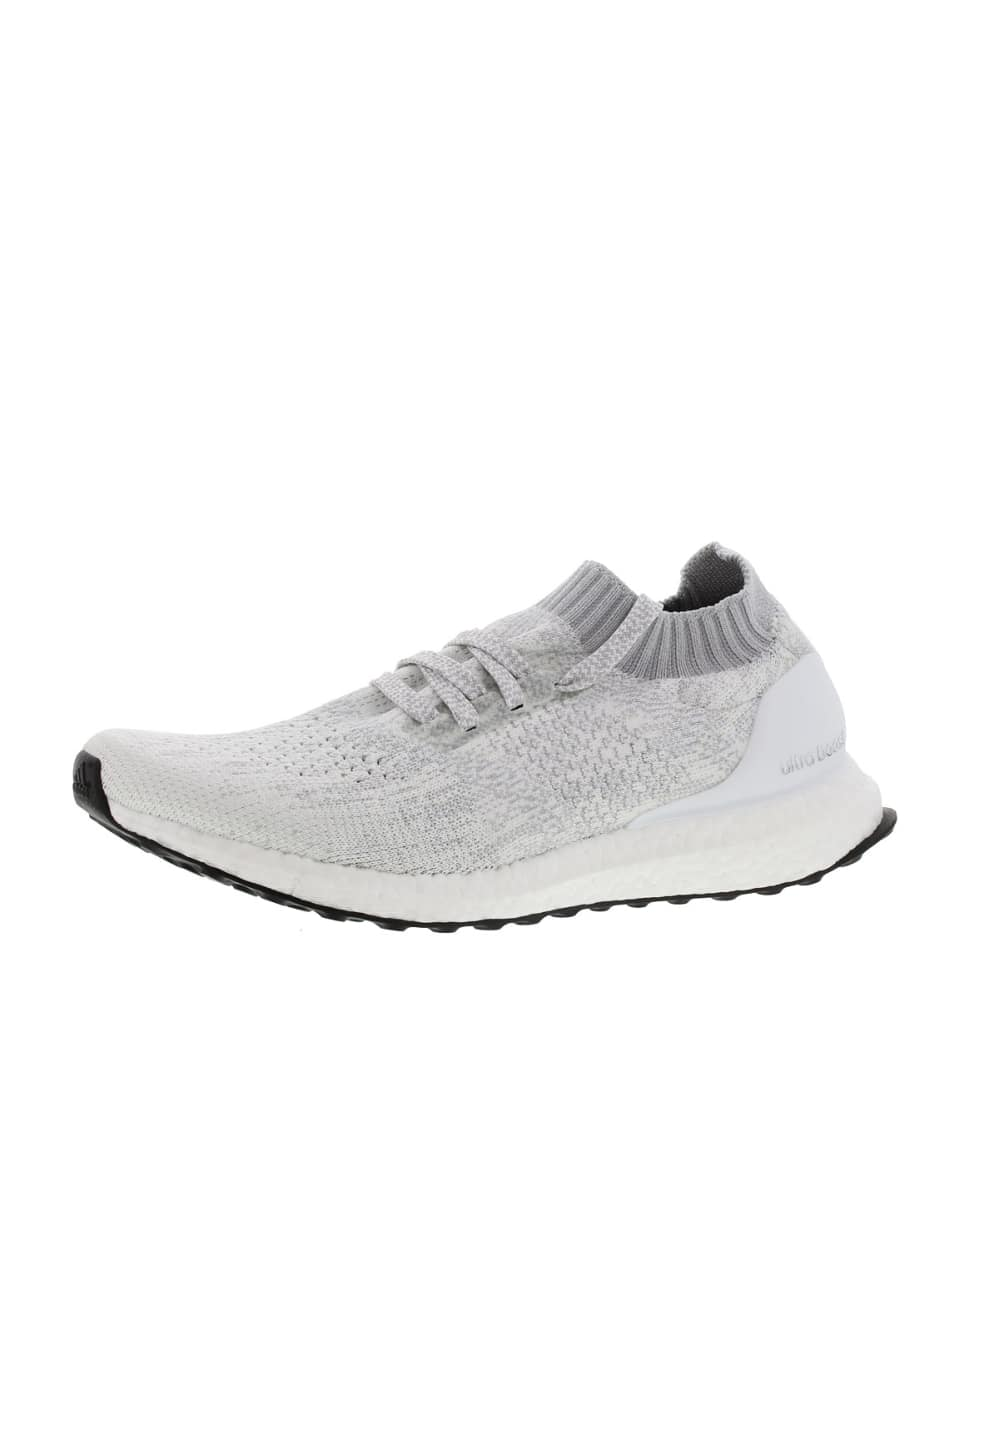 5dbbde493c1ba Next. -60%. This product is currently out of stock. adidas. Ultraboost  Uncaged - Running shoes for Women